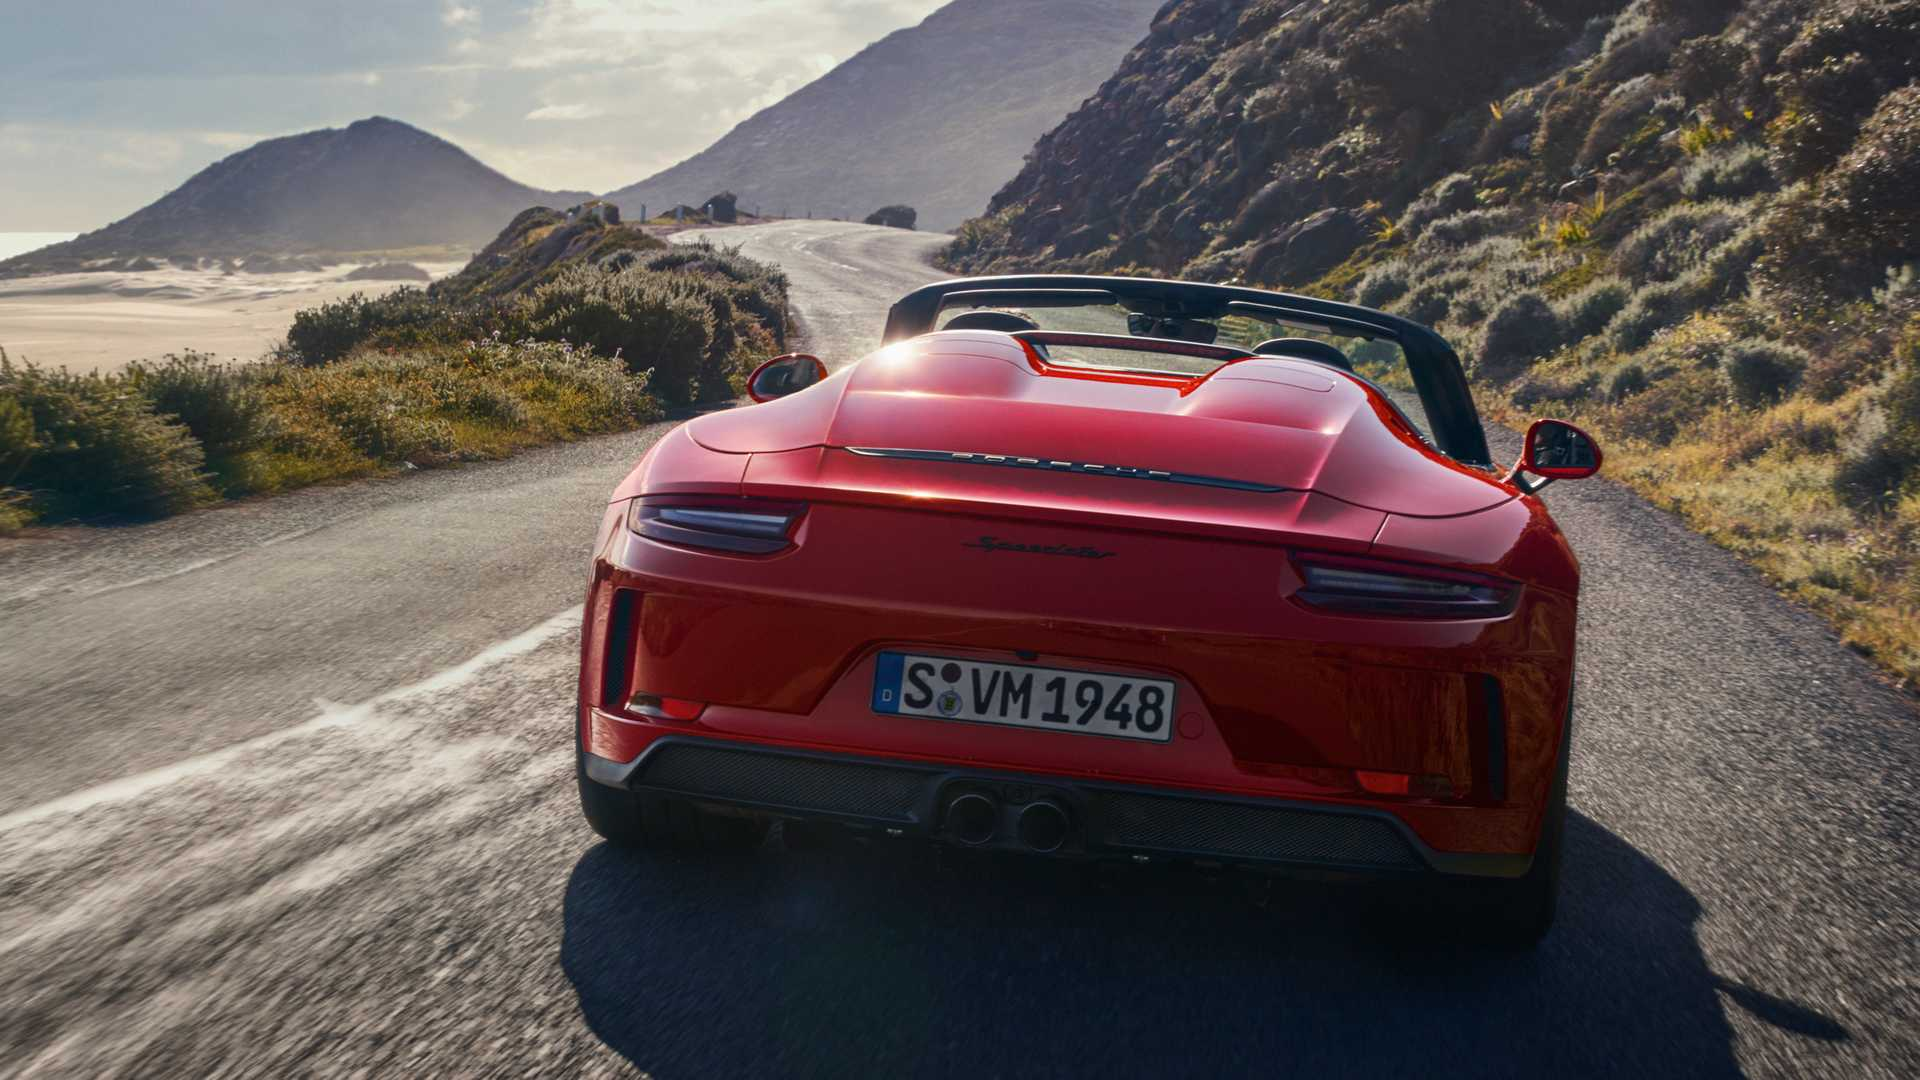 2019 Porsche 911 Speedster Rear Wallpaper (2)